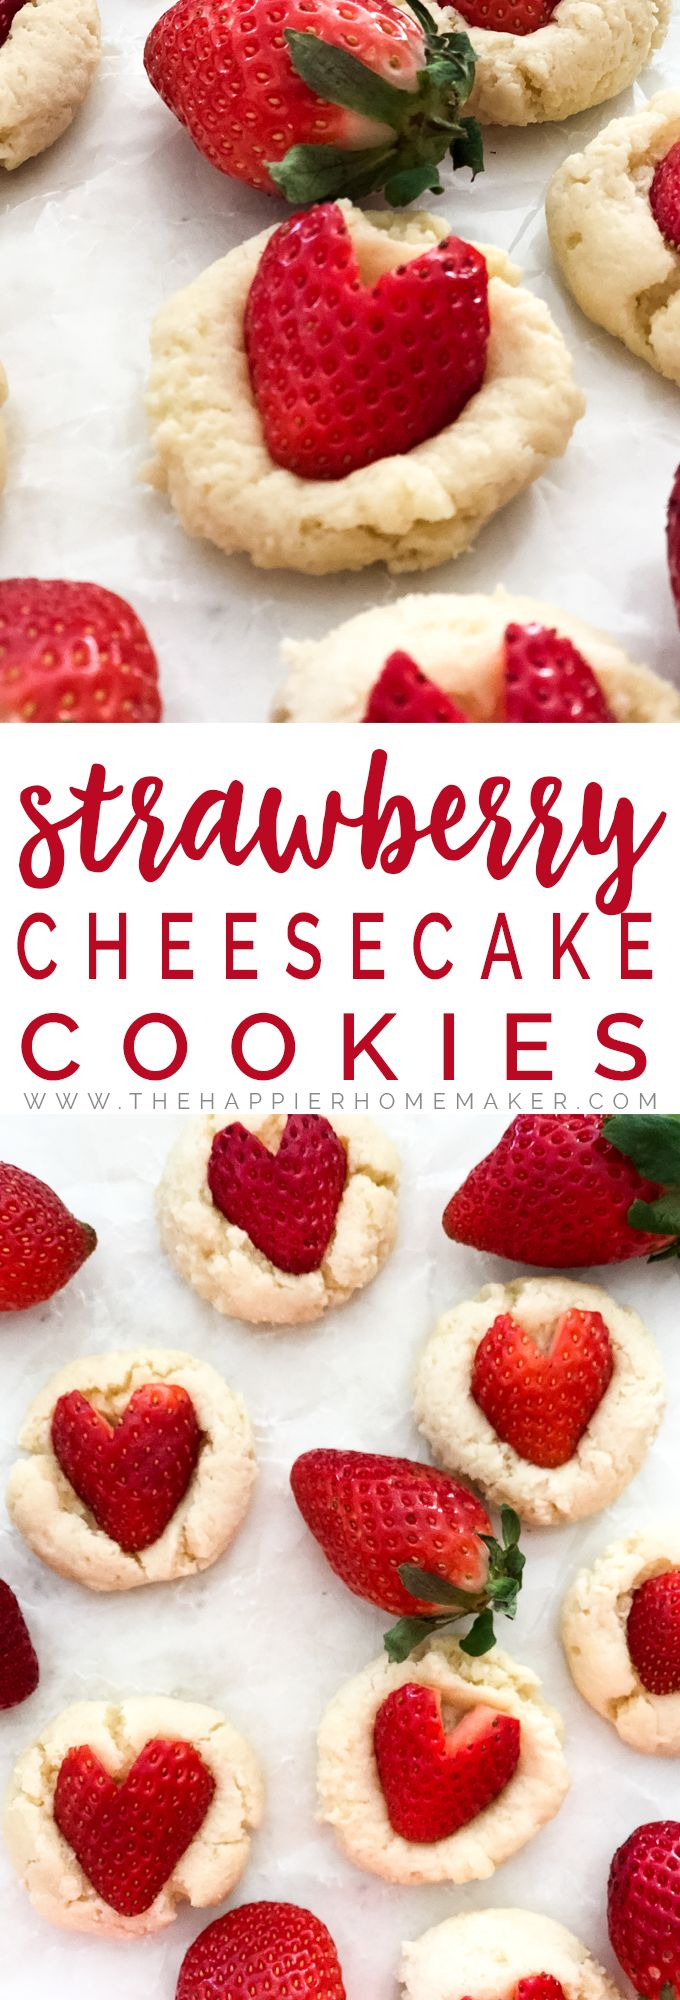 Strawberry Cheesecake Cookie Recipe - Easy, delicious light and fluffy cookies with a creamy center, topped with a heart shaped strawberry. Perfect Valentine's Day dessert recipe! #recipes #valentinesday